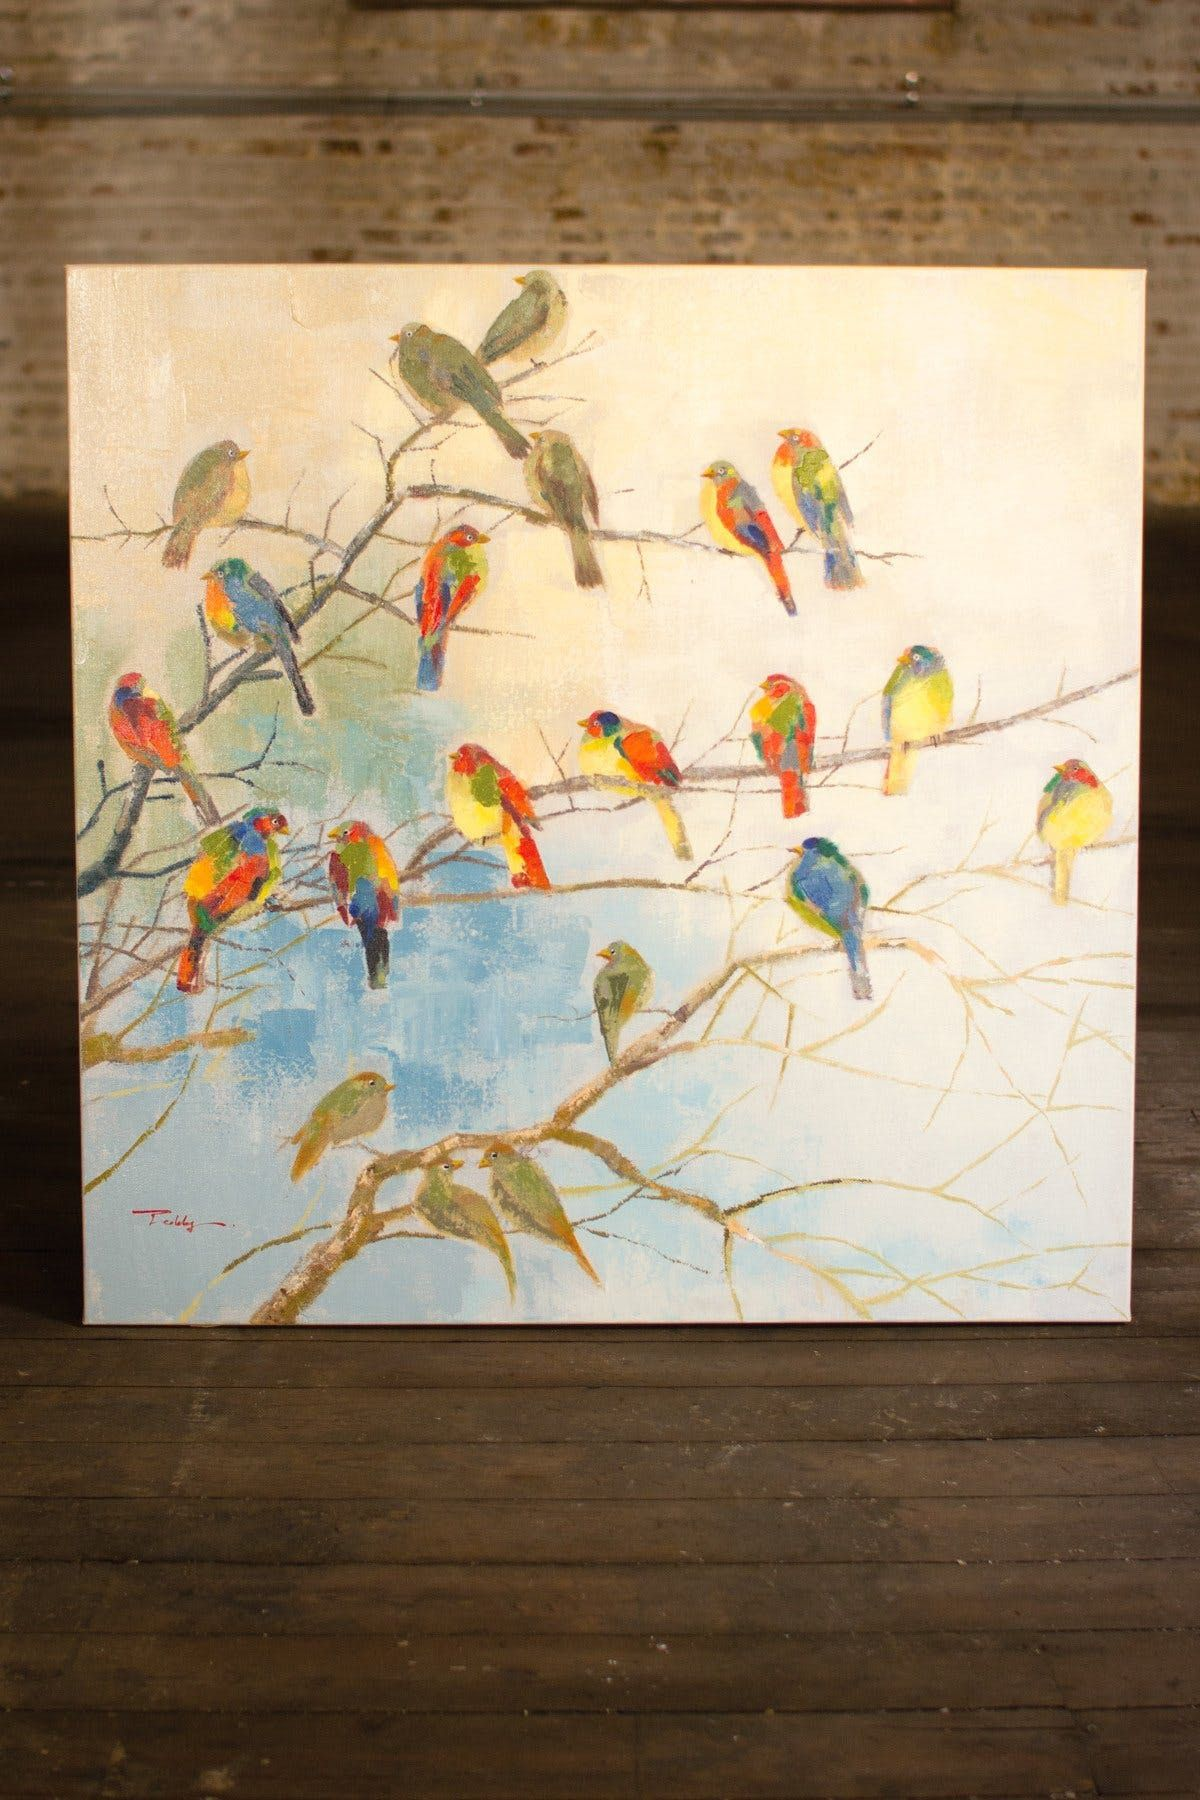 The Whimsey Of Colorful Birds Yields Hy Art Proportionately Sized For Over A Sofa Or Large Scaled Wall This Cheerful Painting Can Easily Compliment